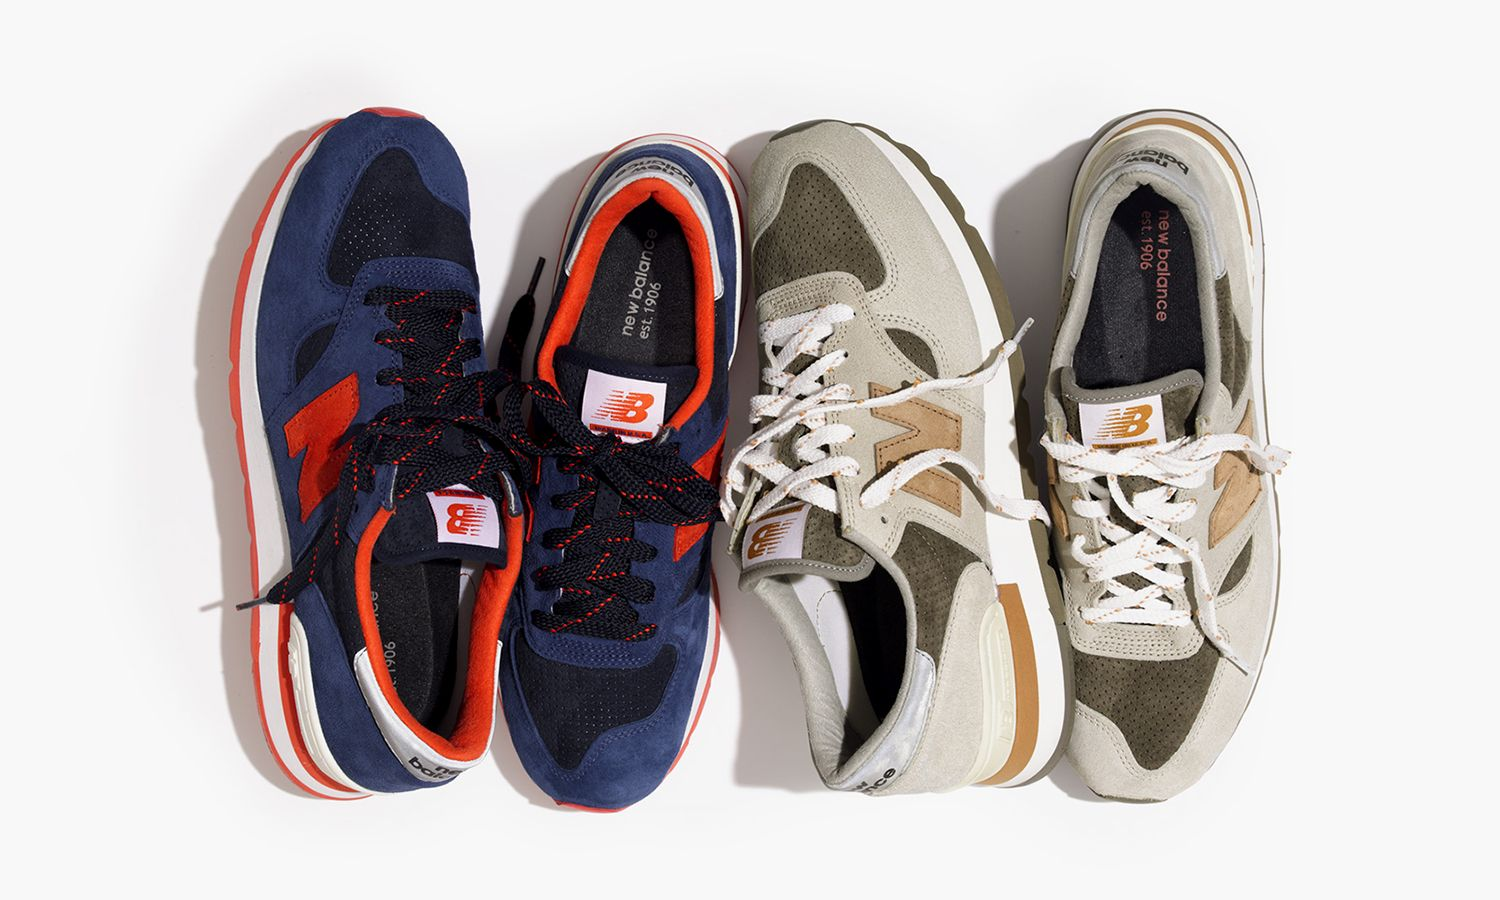 Crew s partnership with New Balance will continue in the form of these New  Balance 990 pairs. The group includes two colorways  the